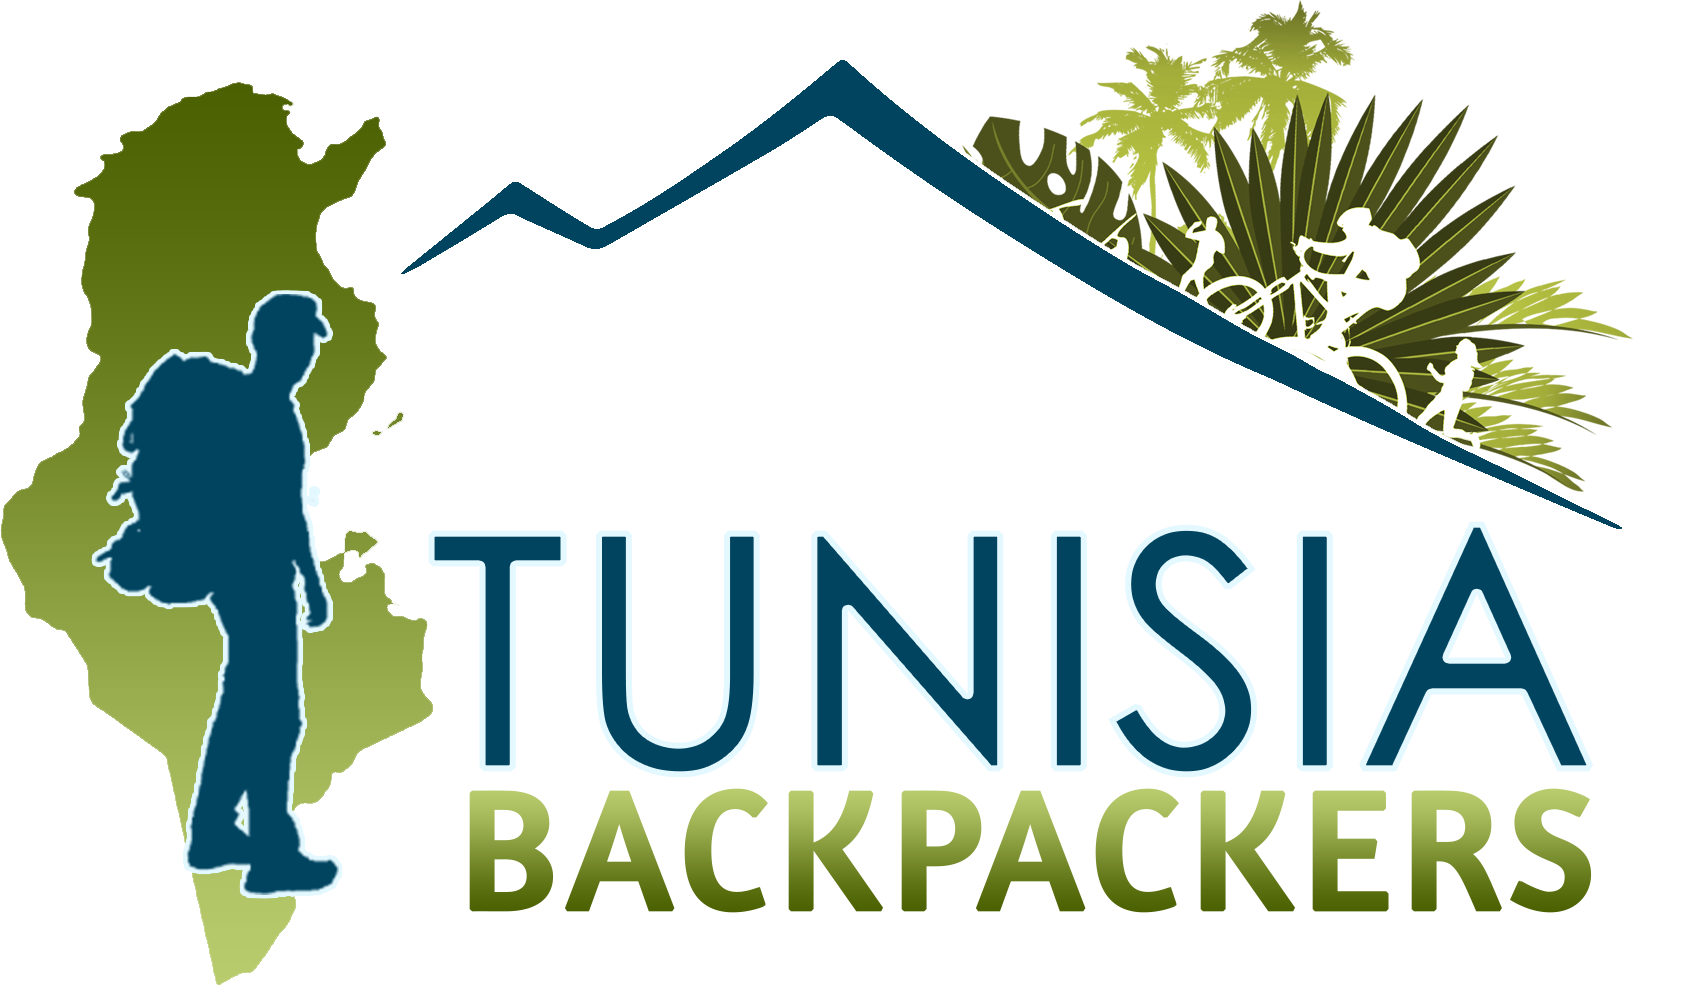 Tunisia Backpackers